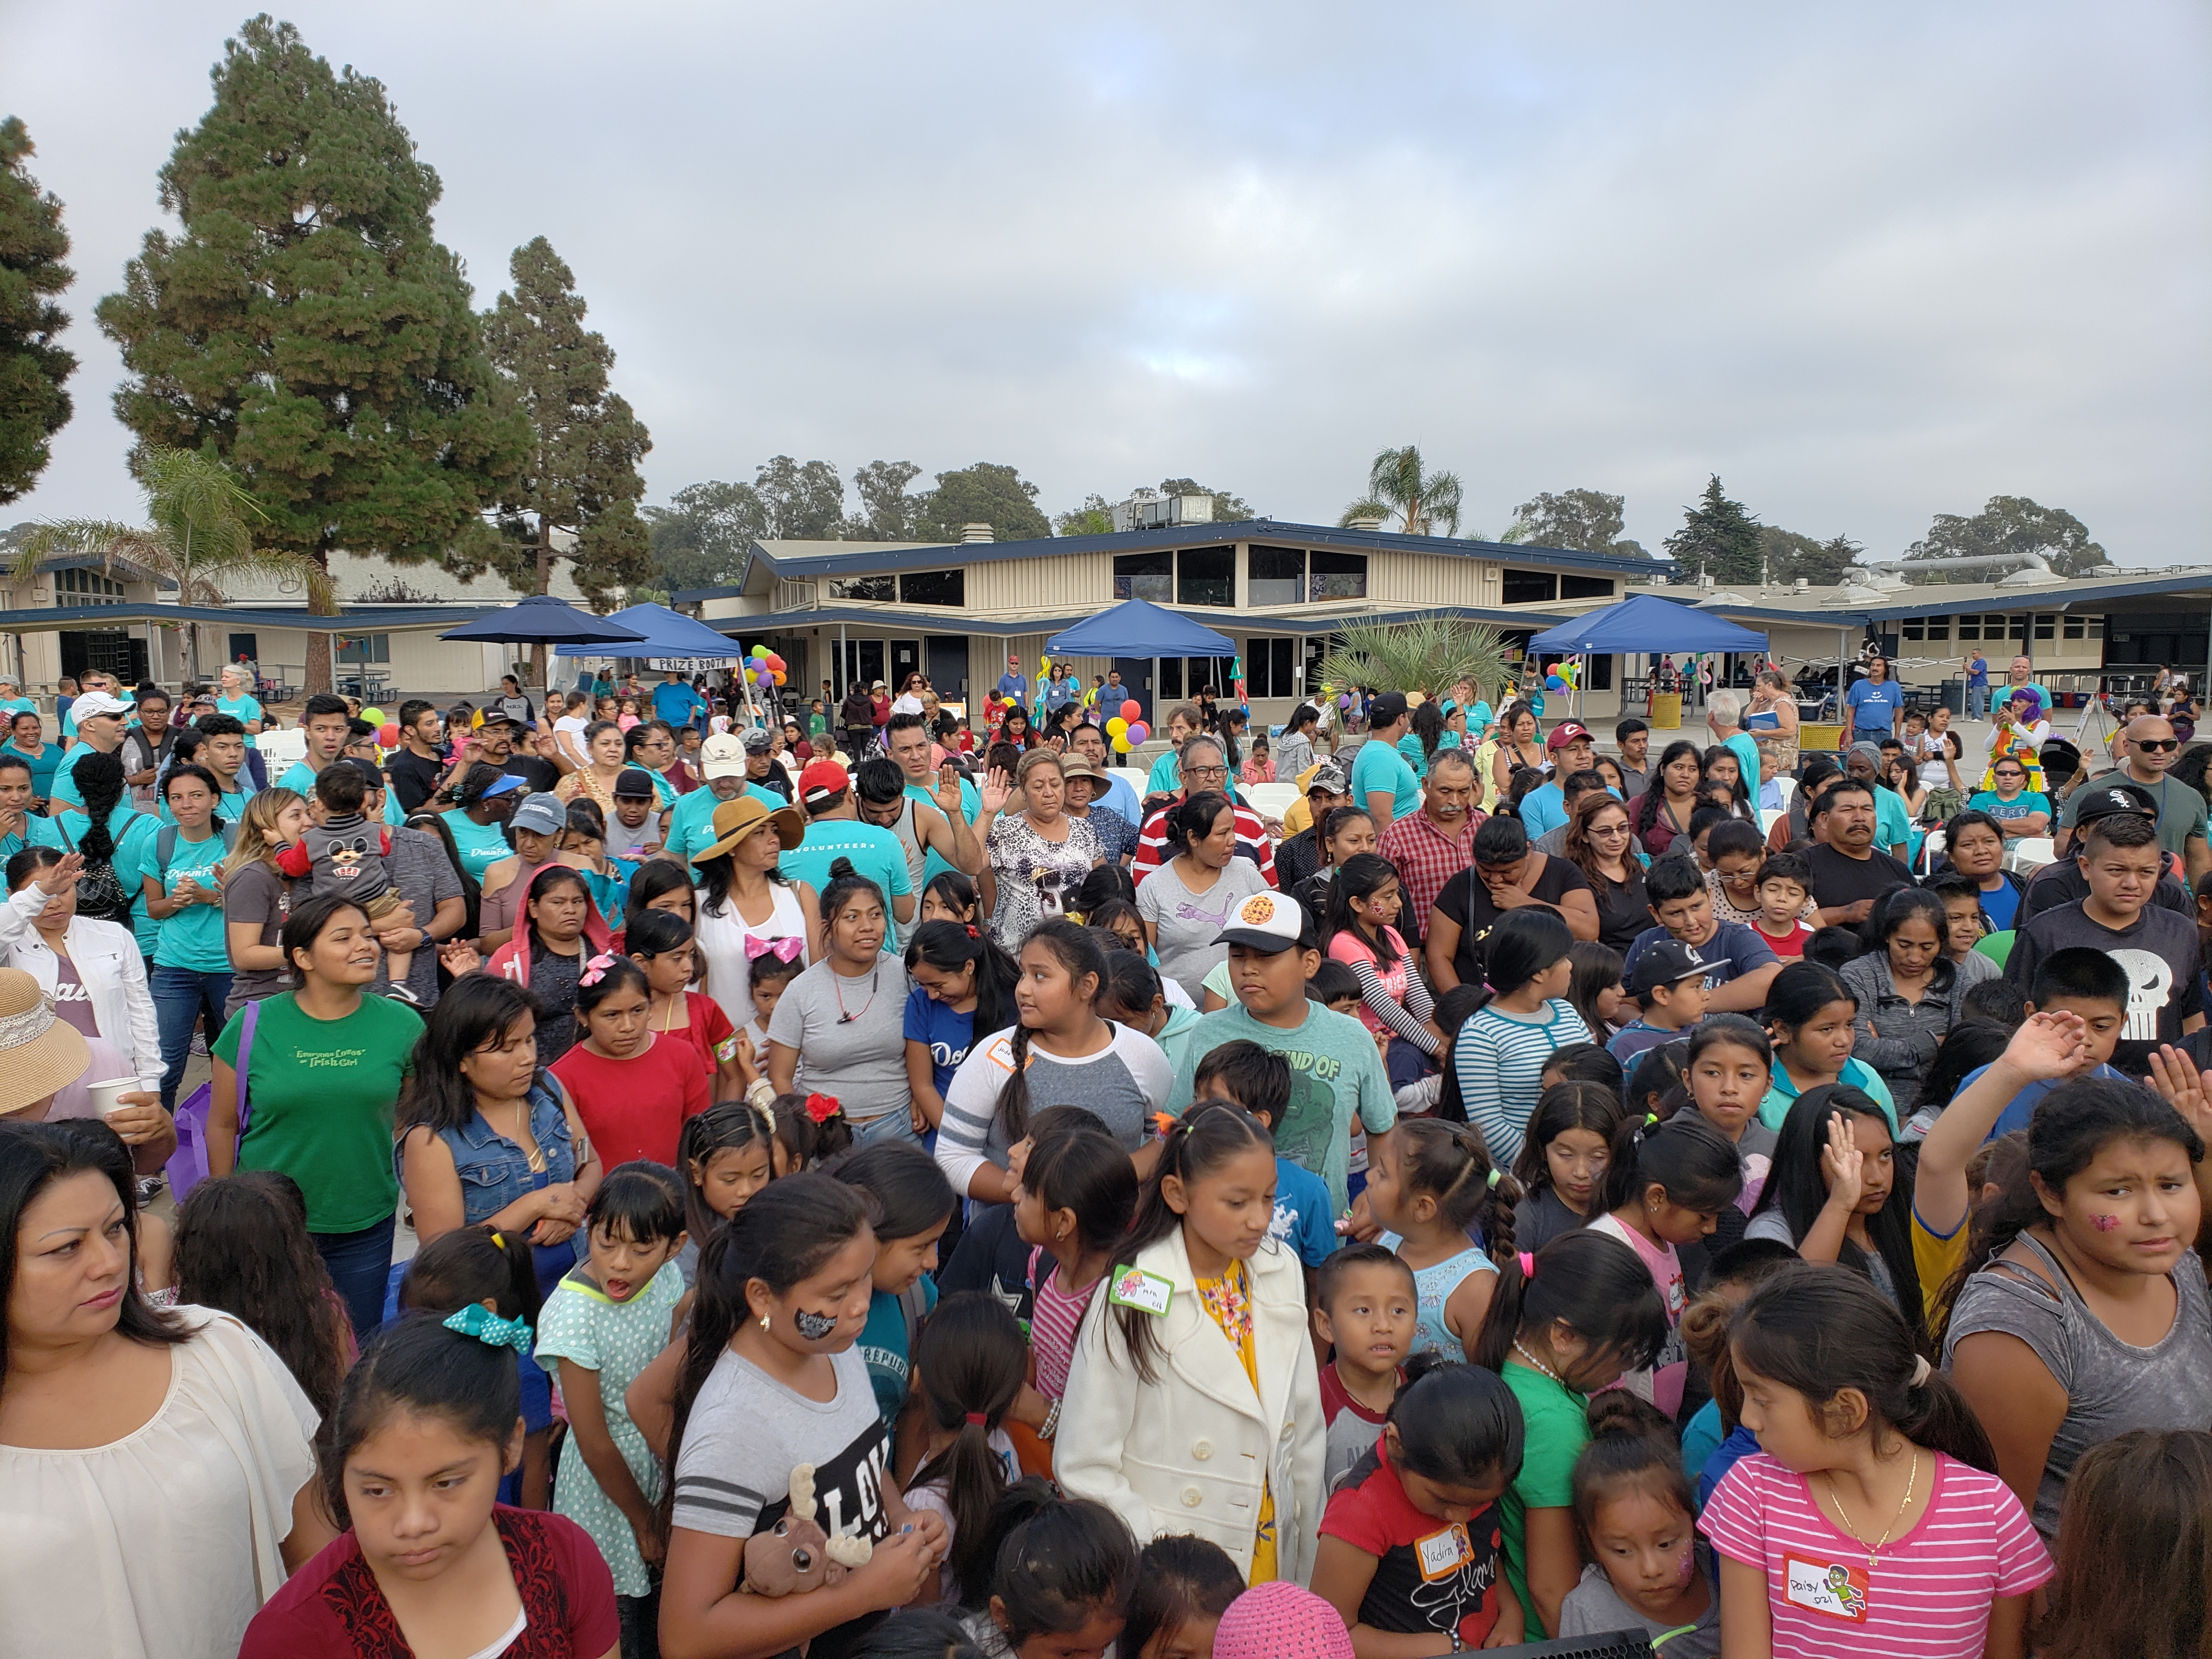 </p> <h2>DREAMFEST</h2> <h3>August 24th</h3> <h4>Port Hueneme High School</h4> <h4>500 W. Bard Rd. Oxnard, CA 93033</h4> <p> </p> <h4>Learn More</h4> <p>